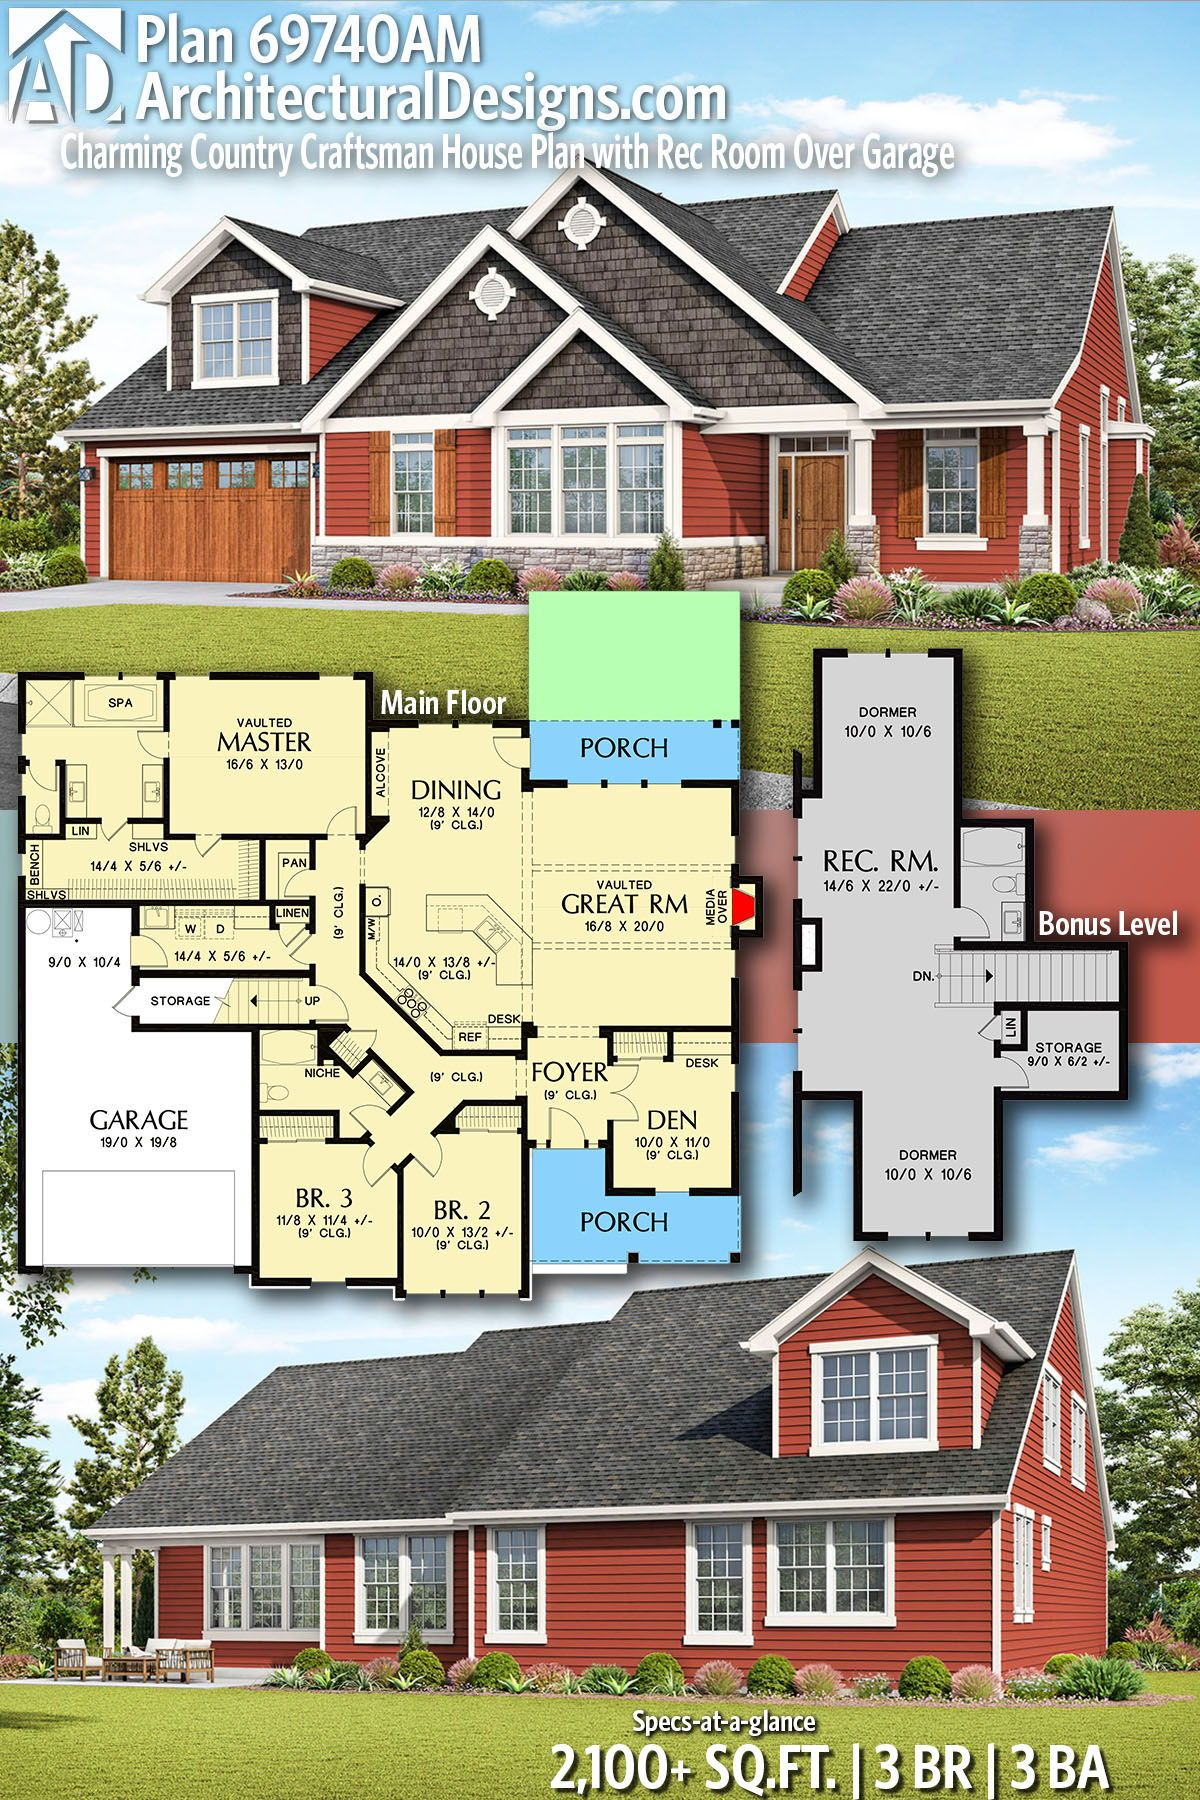 Plan 69740am Charming Country Craftsman House Plan With Rec Room Over Garage Craftsman House Plan Craftsman House Craftsman House Plans